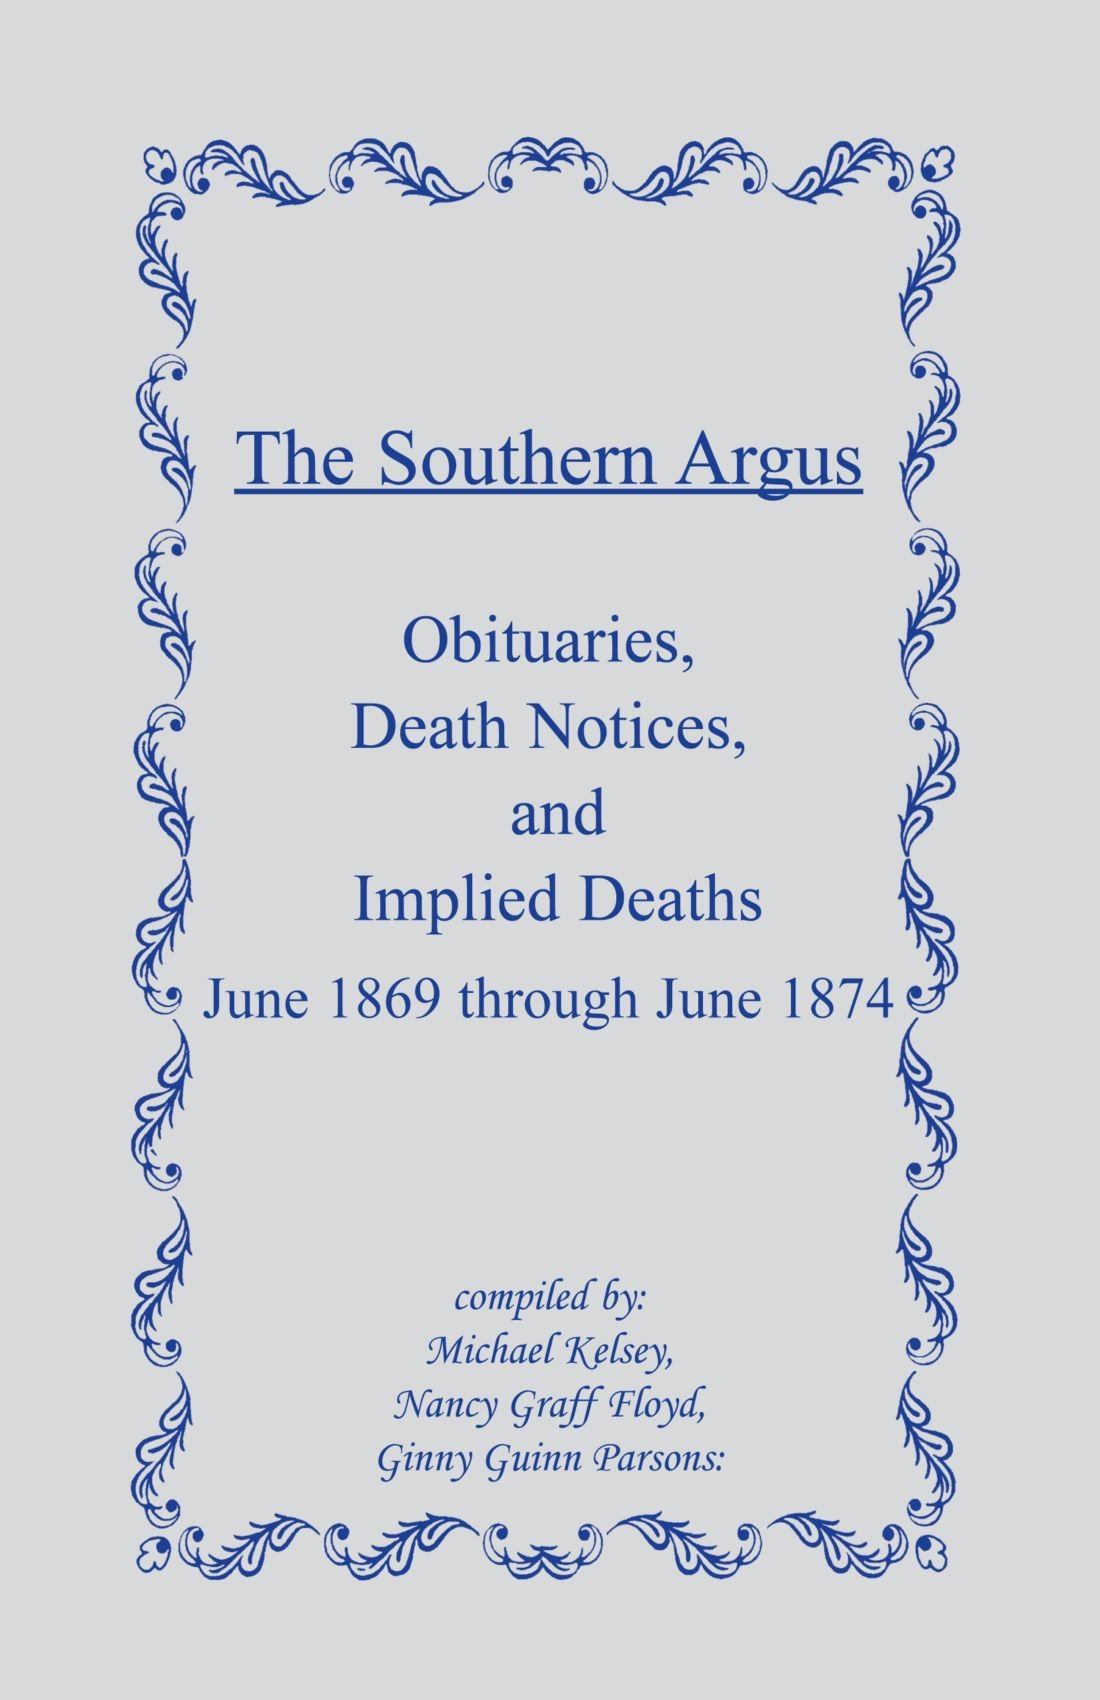 The Southern Argus: Obituaries, Death Notices and Implied